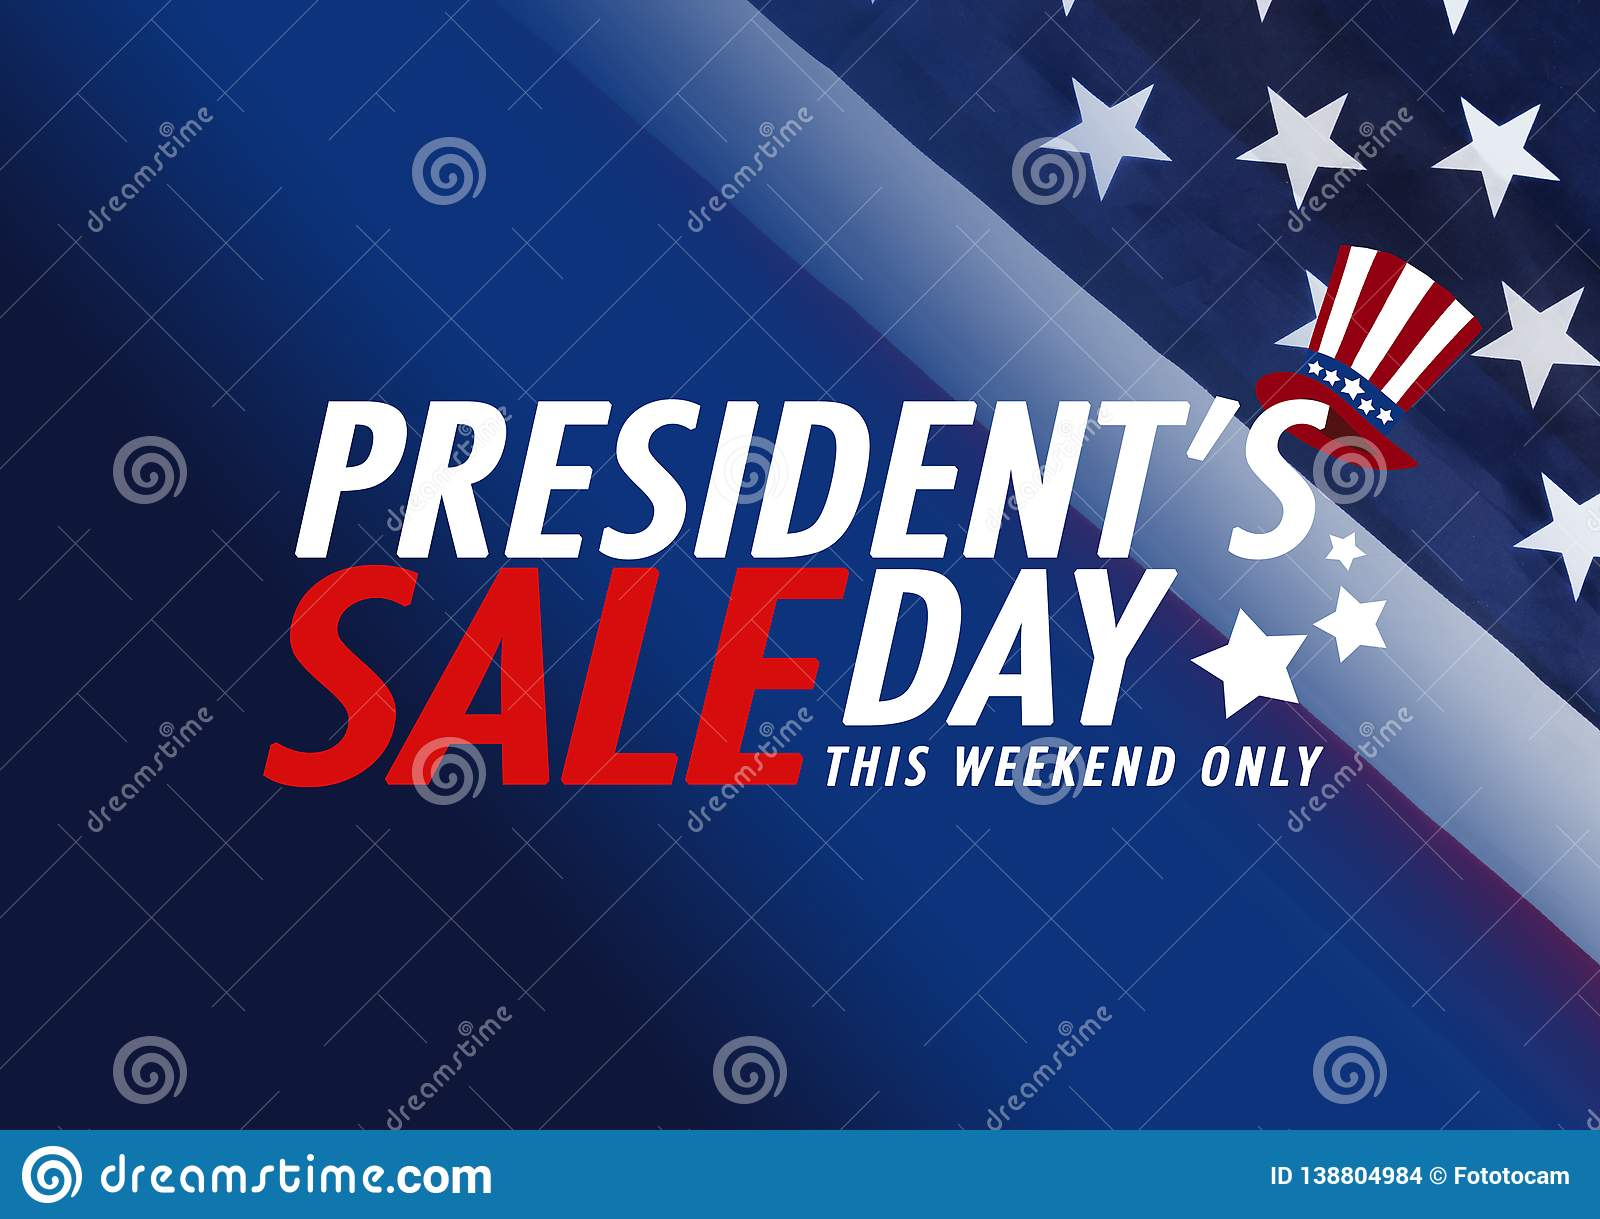 59e19c44862 Presidents` Day Sale Banner With American Flag And Stars Background ...